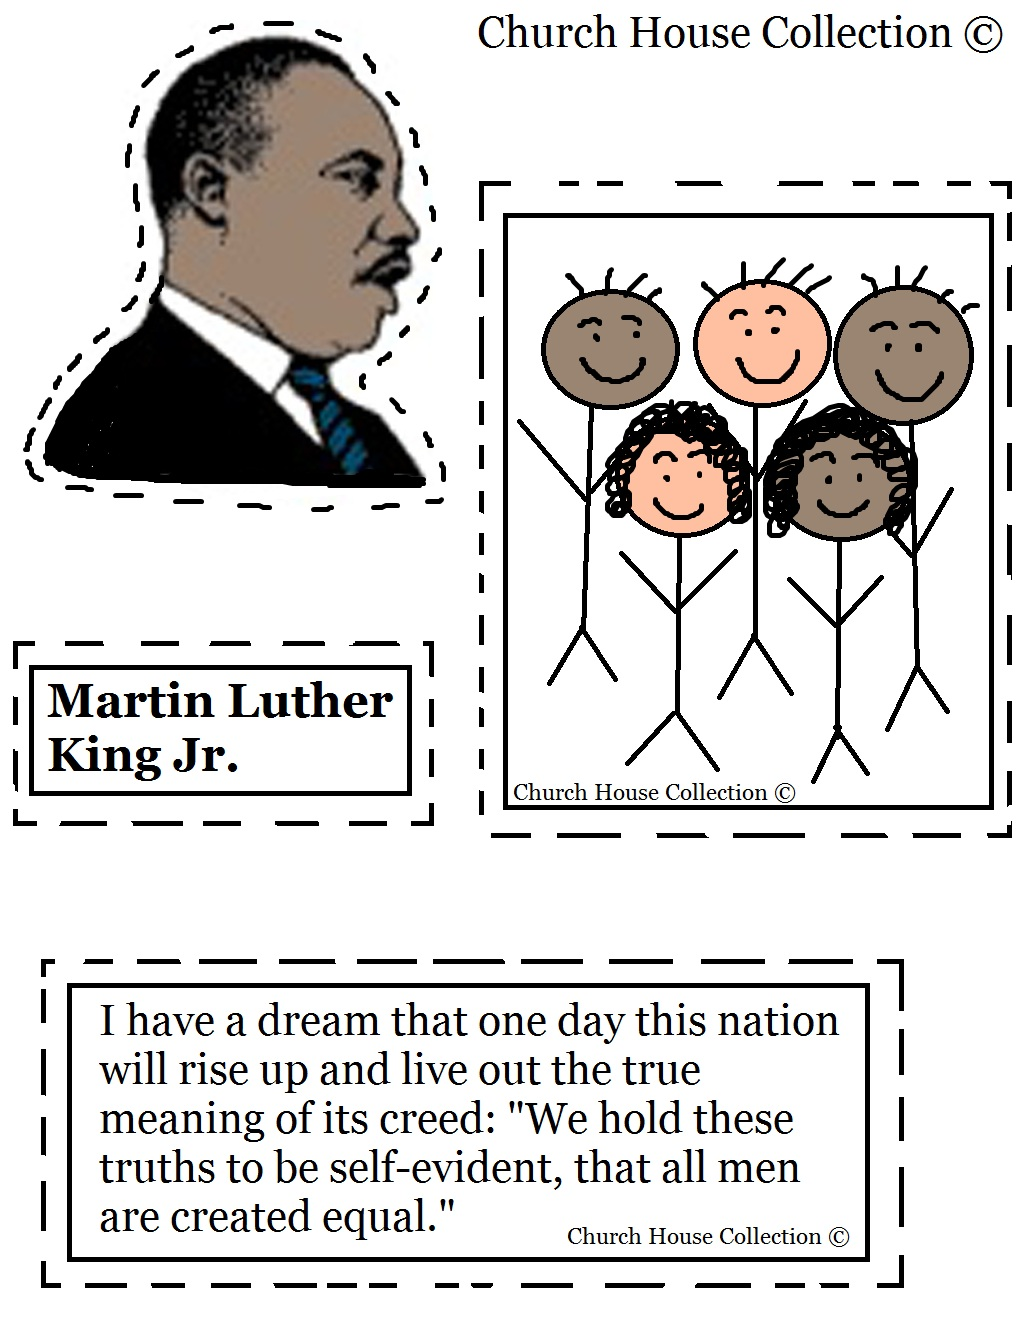 Martin Luther King Jr Coloring Pages For Kindergarten : Church house collection martin luther king jr craft